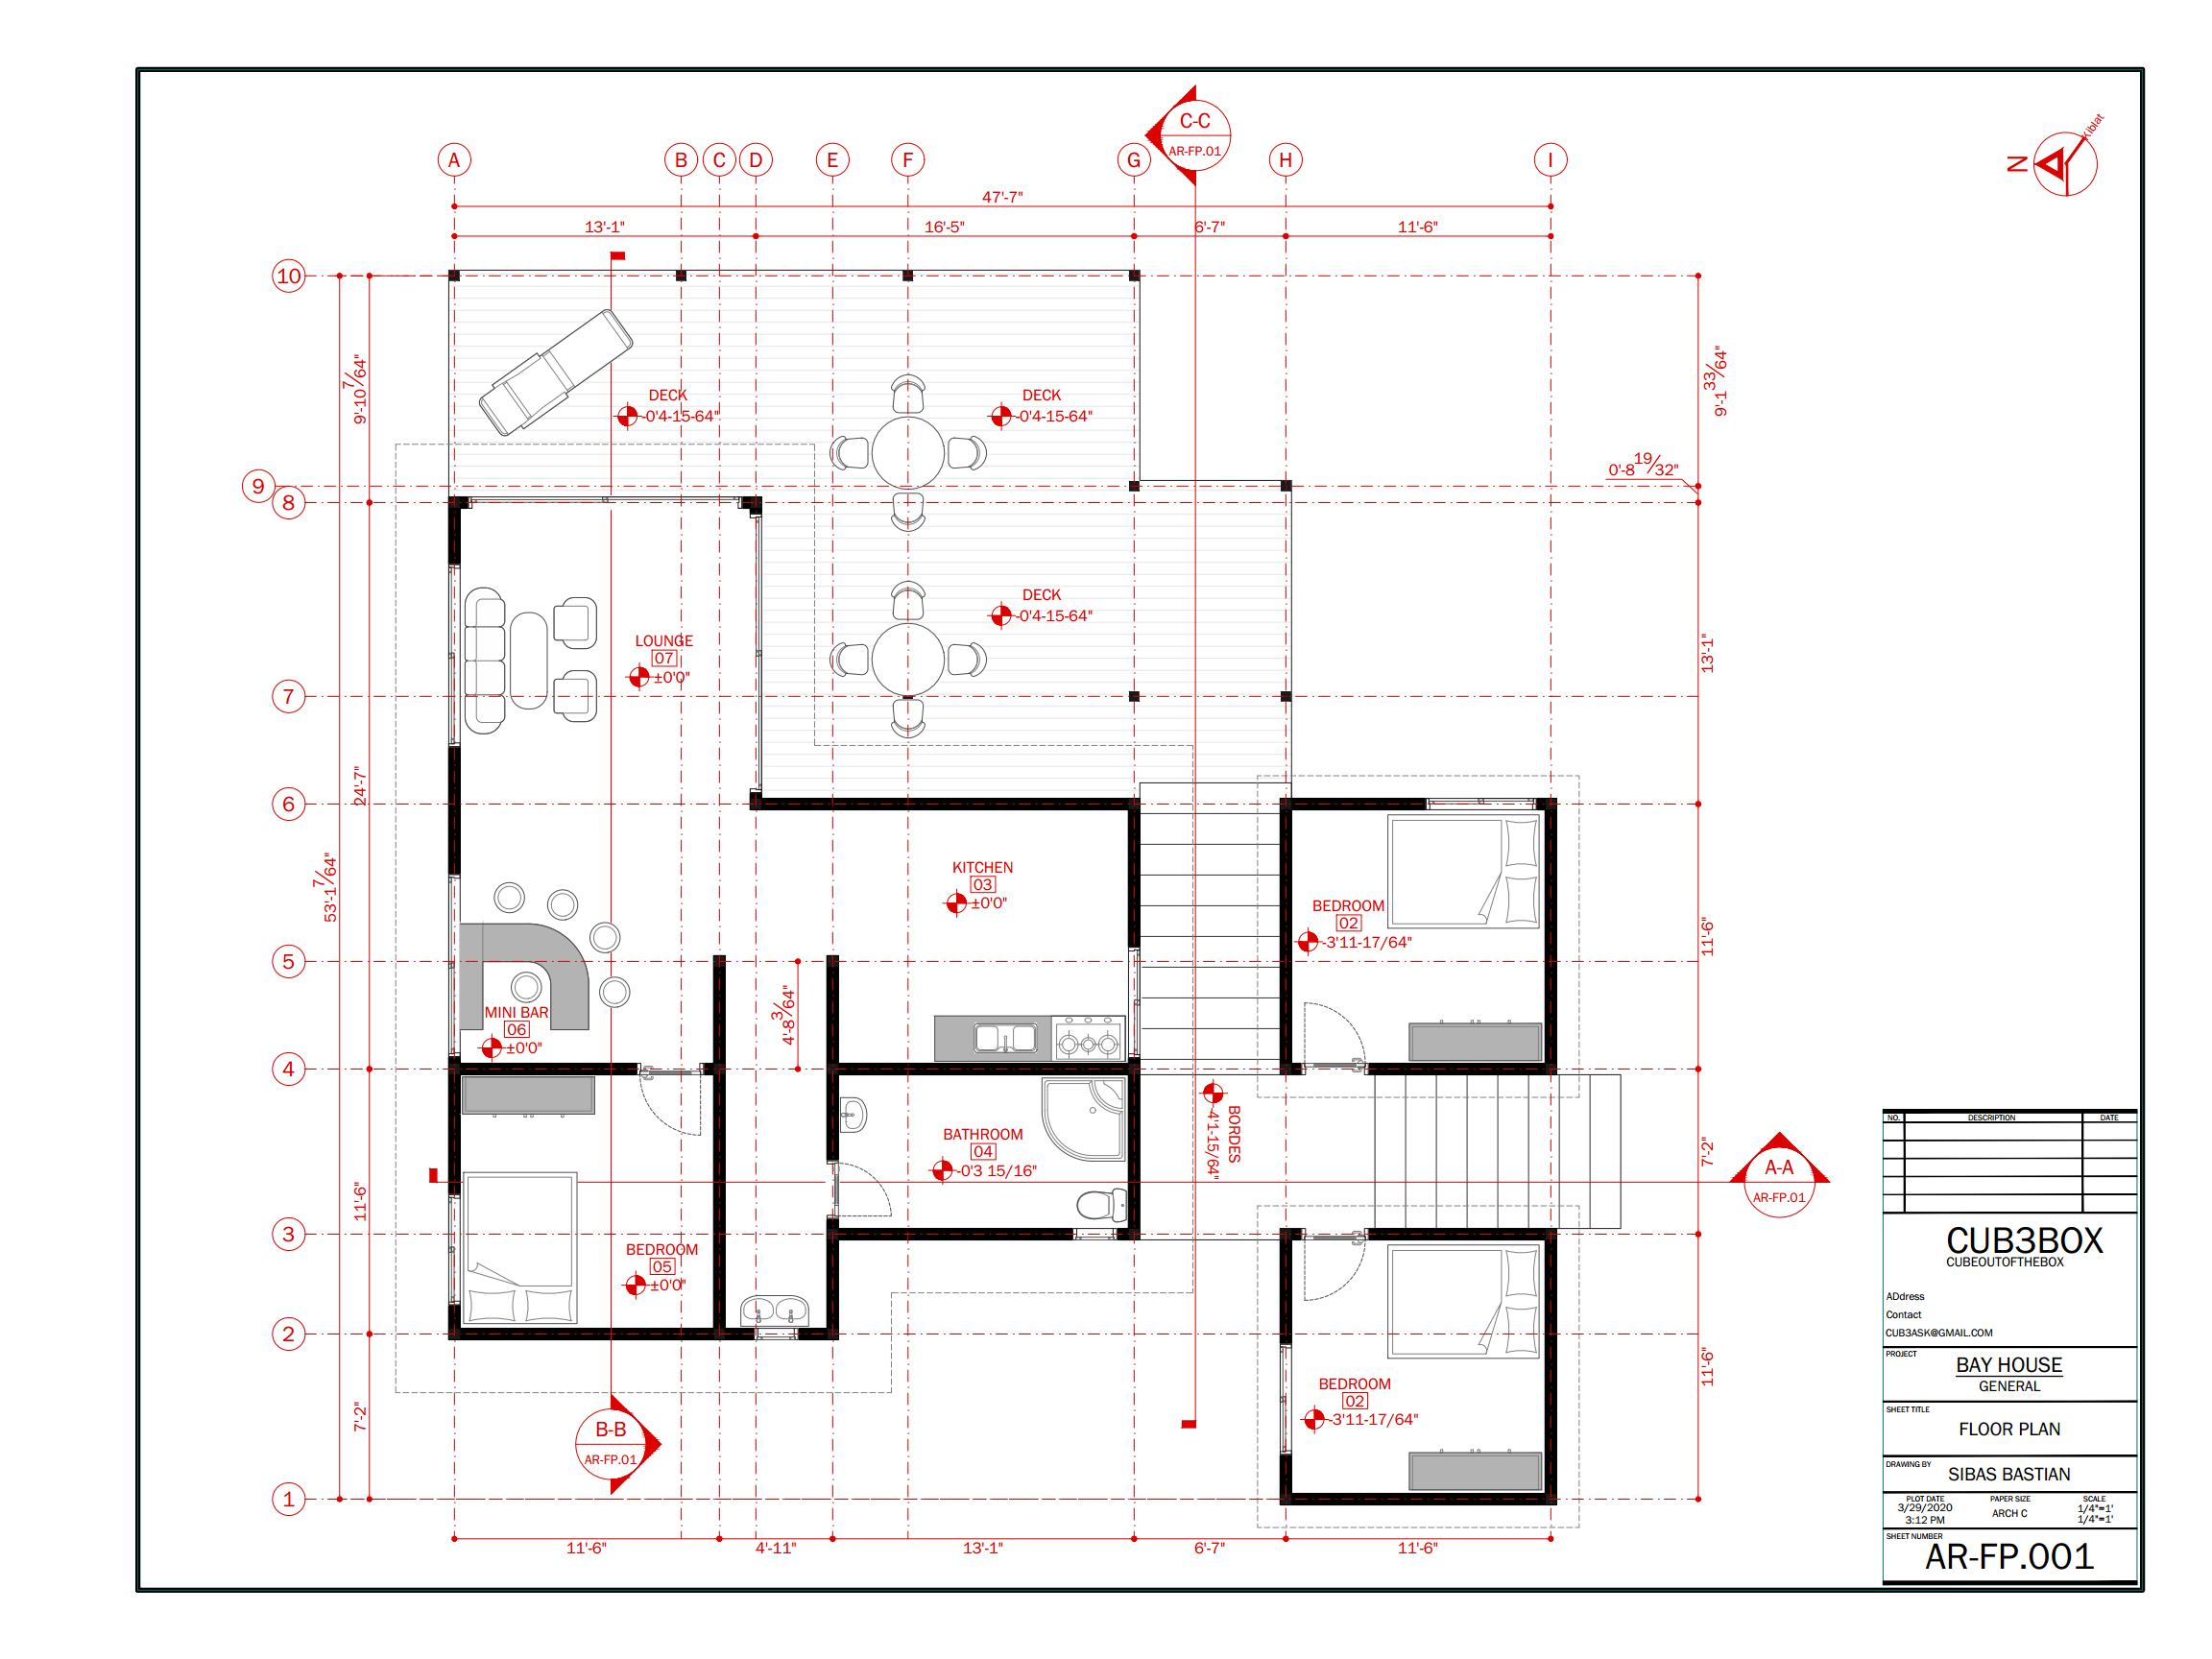 Bay House Architecture Plan with floor plan, section, and